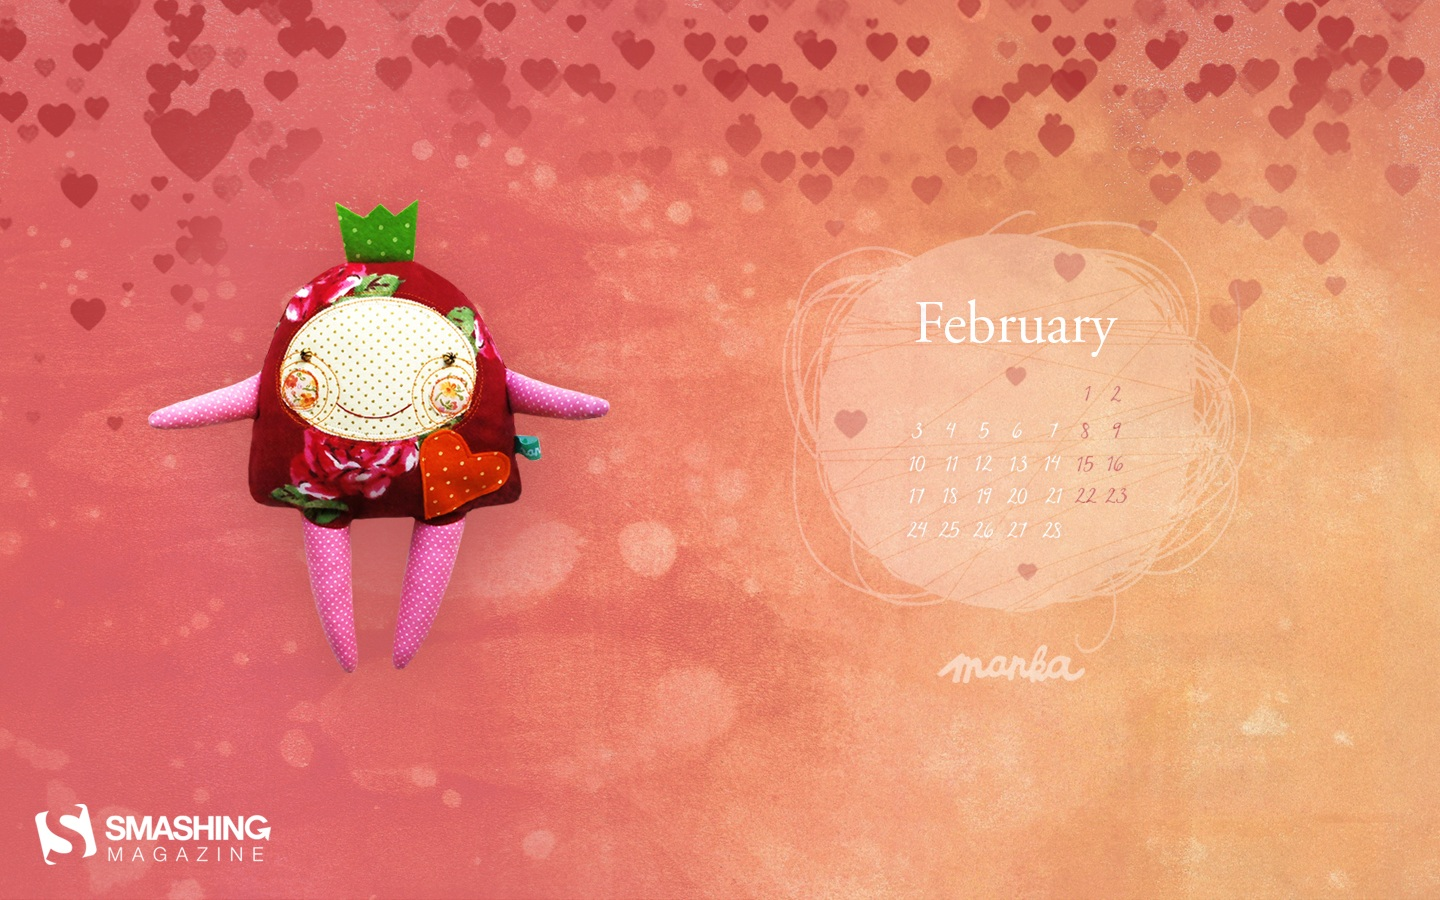 In January Calendar Wallpaper 49869